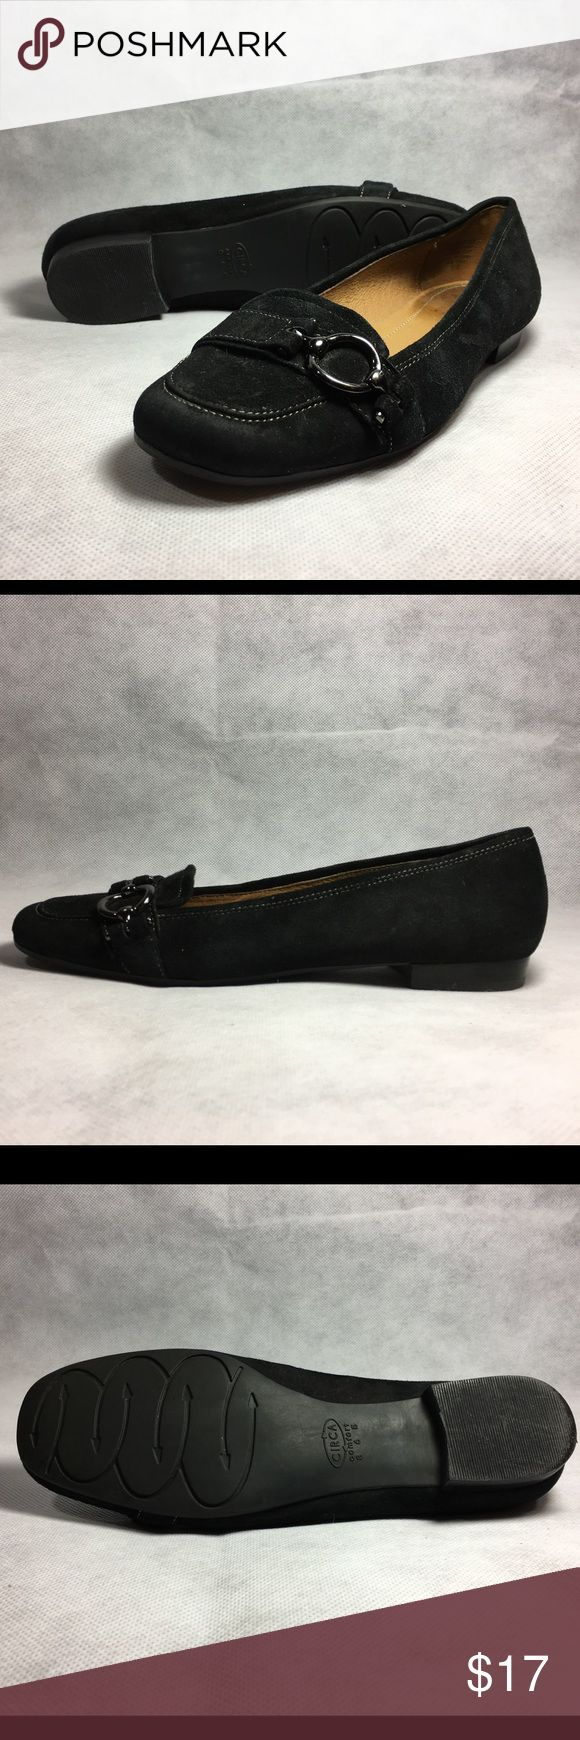 """Circa Joan & David CJ Beverly Loafer Shoe US 6 M Circa Joan & David Womens CJ Beverly Loafer Shoe   Size: US 6 (B, M) Color: Black   Condition: Excellent condition. Some lint visible in photo number 1.   ABOUT THIS ITEM  Description Slip on CJ Beverly flat Loafer shoe by Circa Joan & David with buckle and 1 inch rubber heel pad for 365 comfort.   Features & details • Leather • Imported • Buckle • Heel measures approximately 1"""" • Rubber sole • Slip on • 365 Comfort  Product information…"""